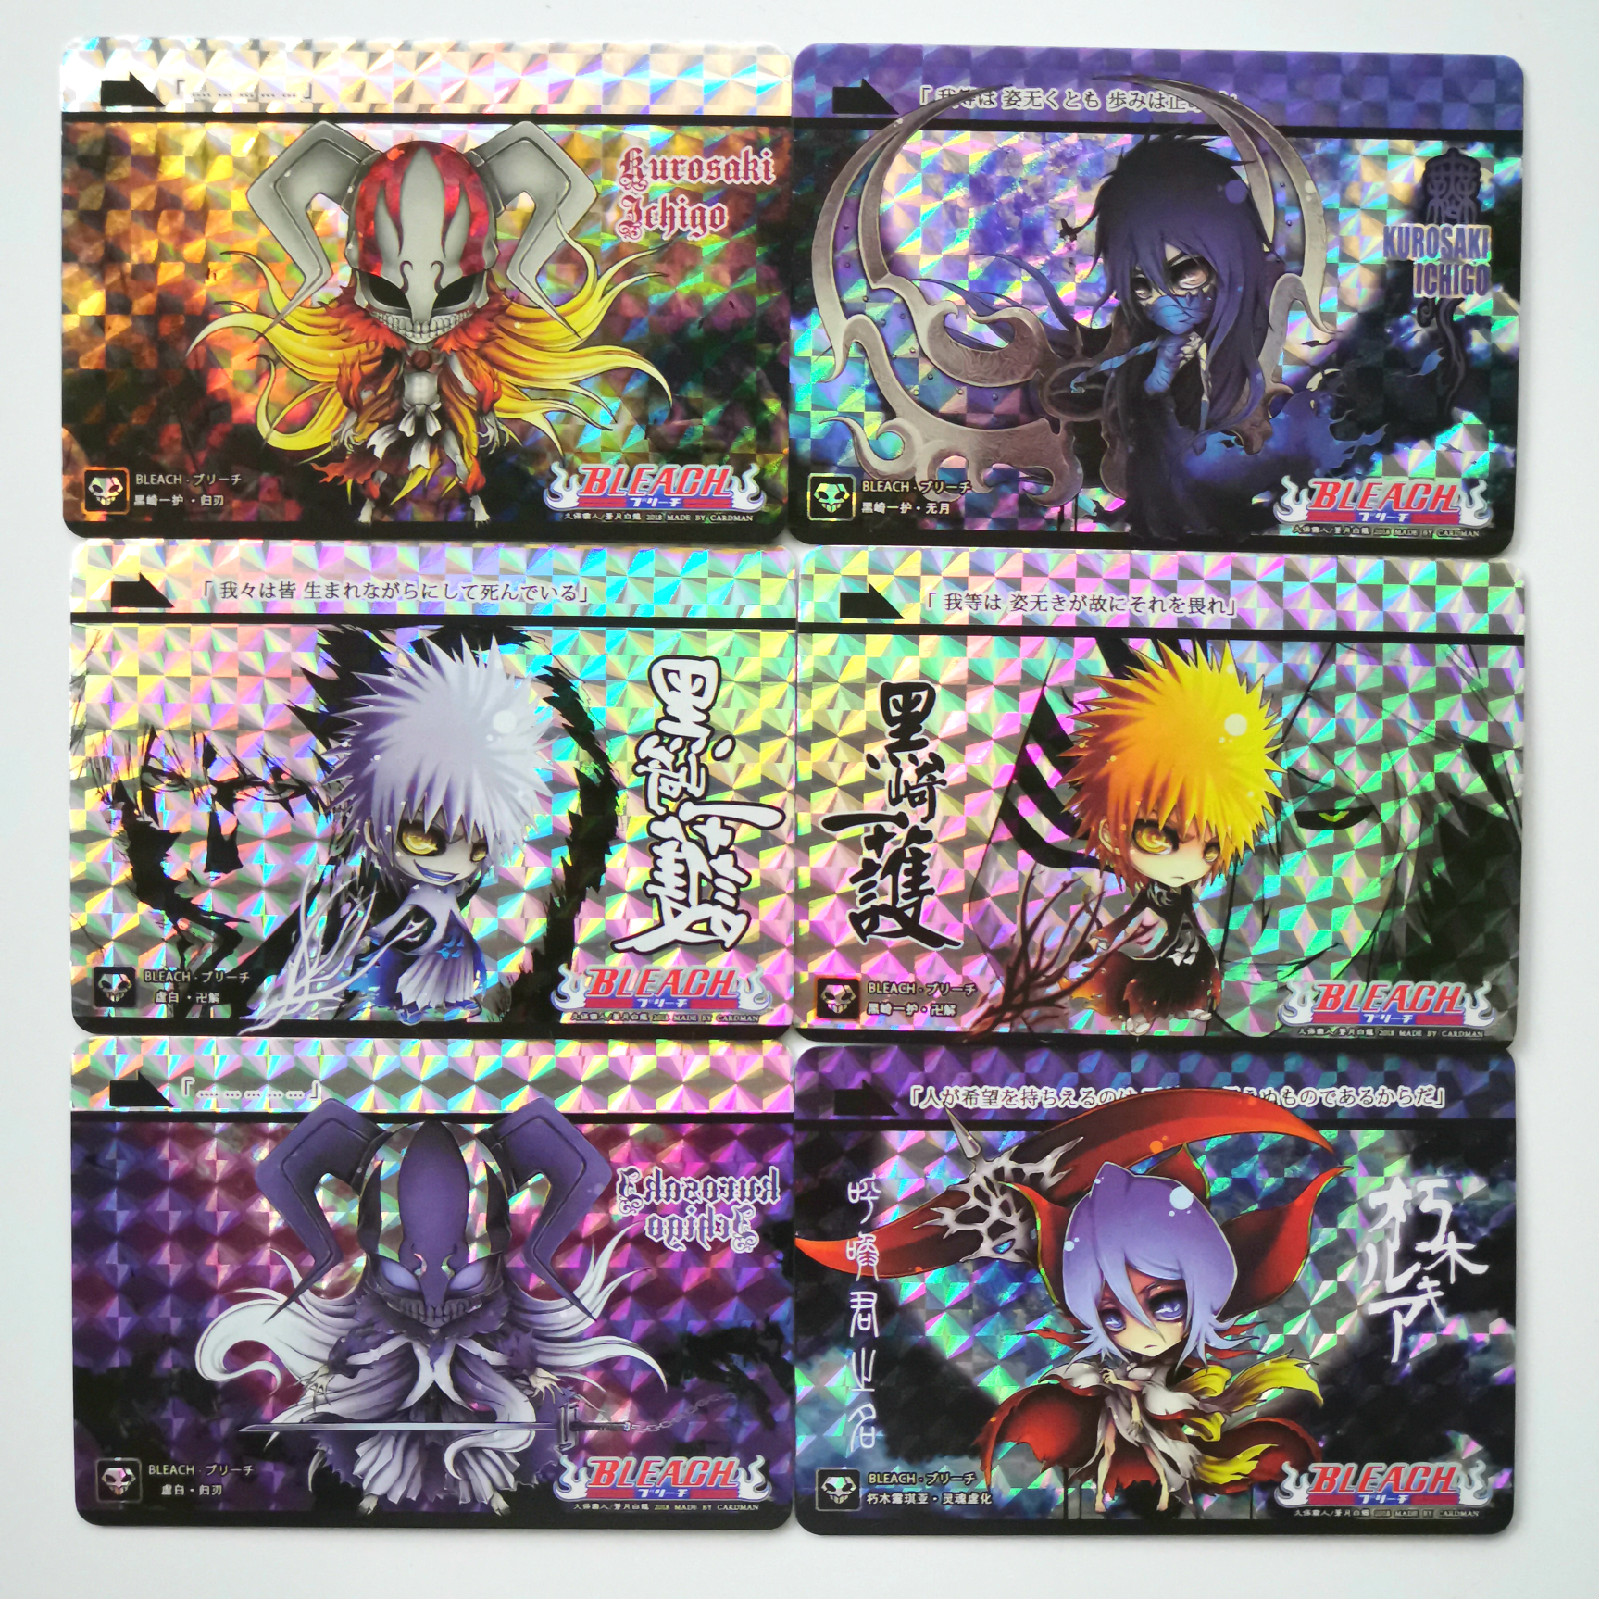 54pcs/set BLEACH Q Version Toys Hobbies Hobby Collectibles Game Collection Anime Cards